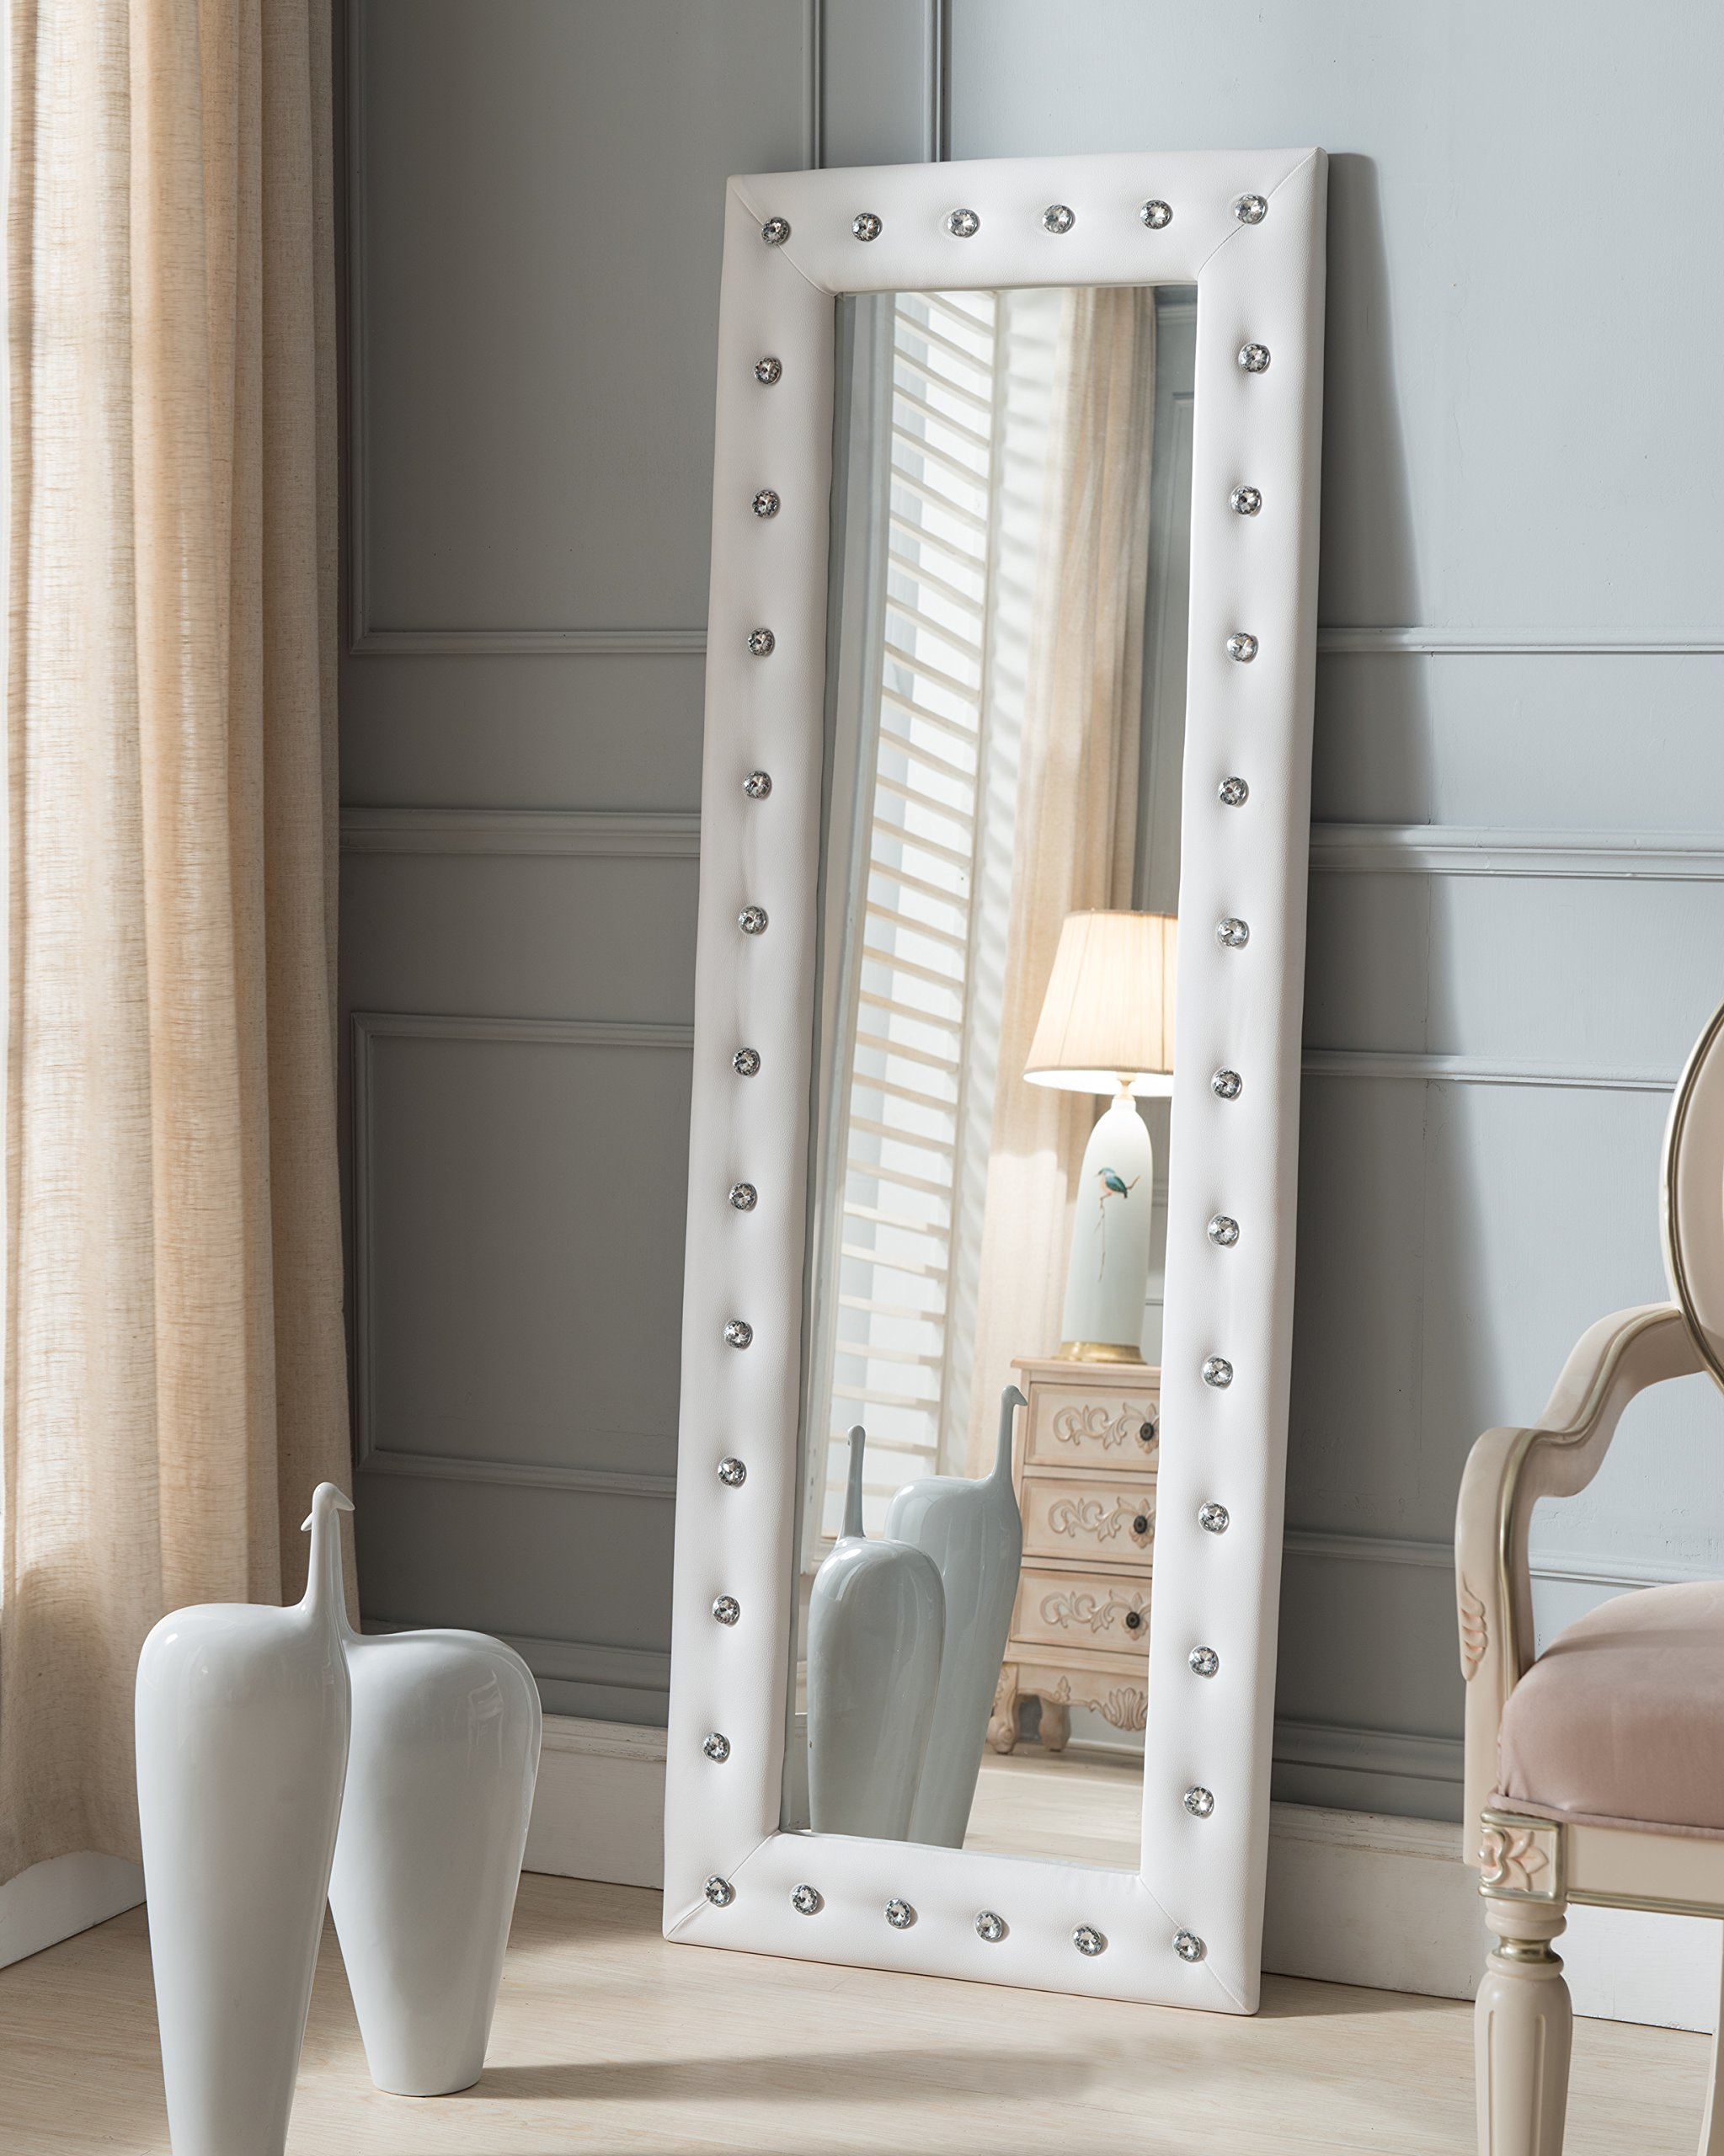 Kings Brand White Modern Upholstered Tufted Standing Floor Mirror by Kings Brand Furniture